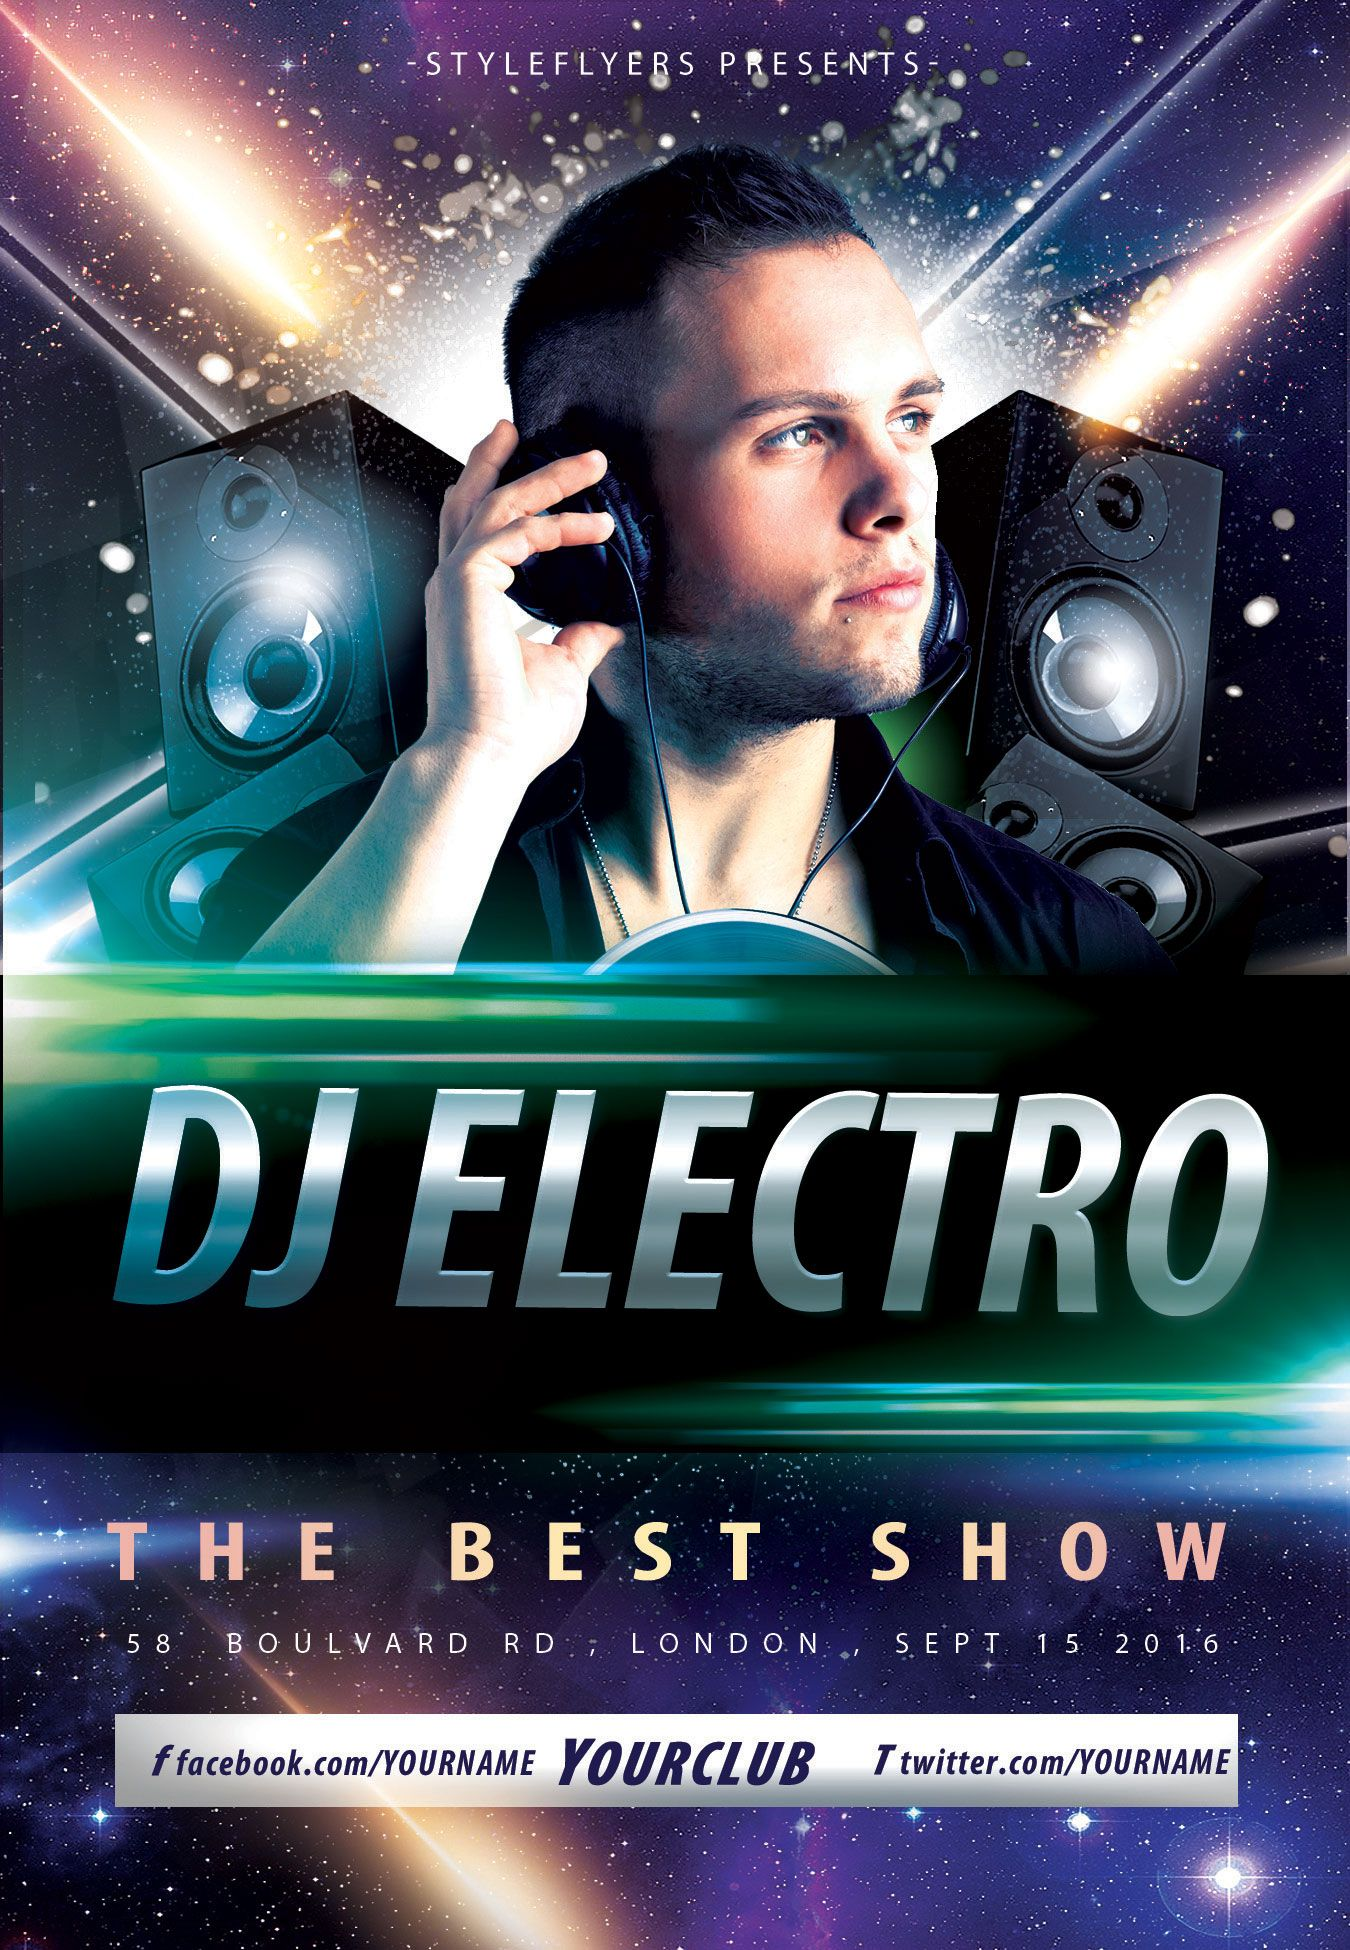 Free Dj Electro Party Flyer Psd Template By Styleflyer Is The